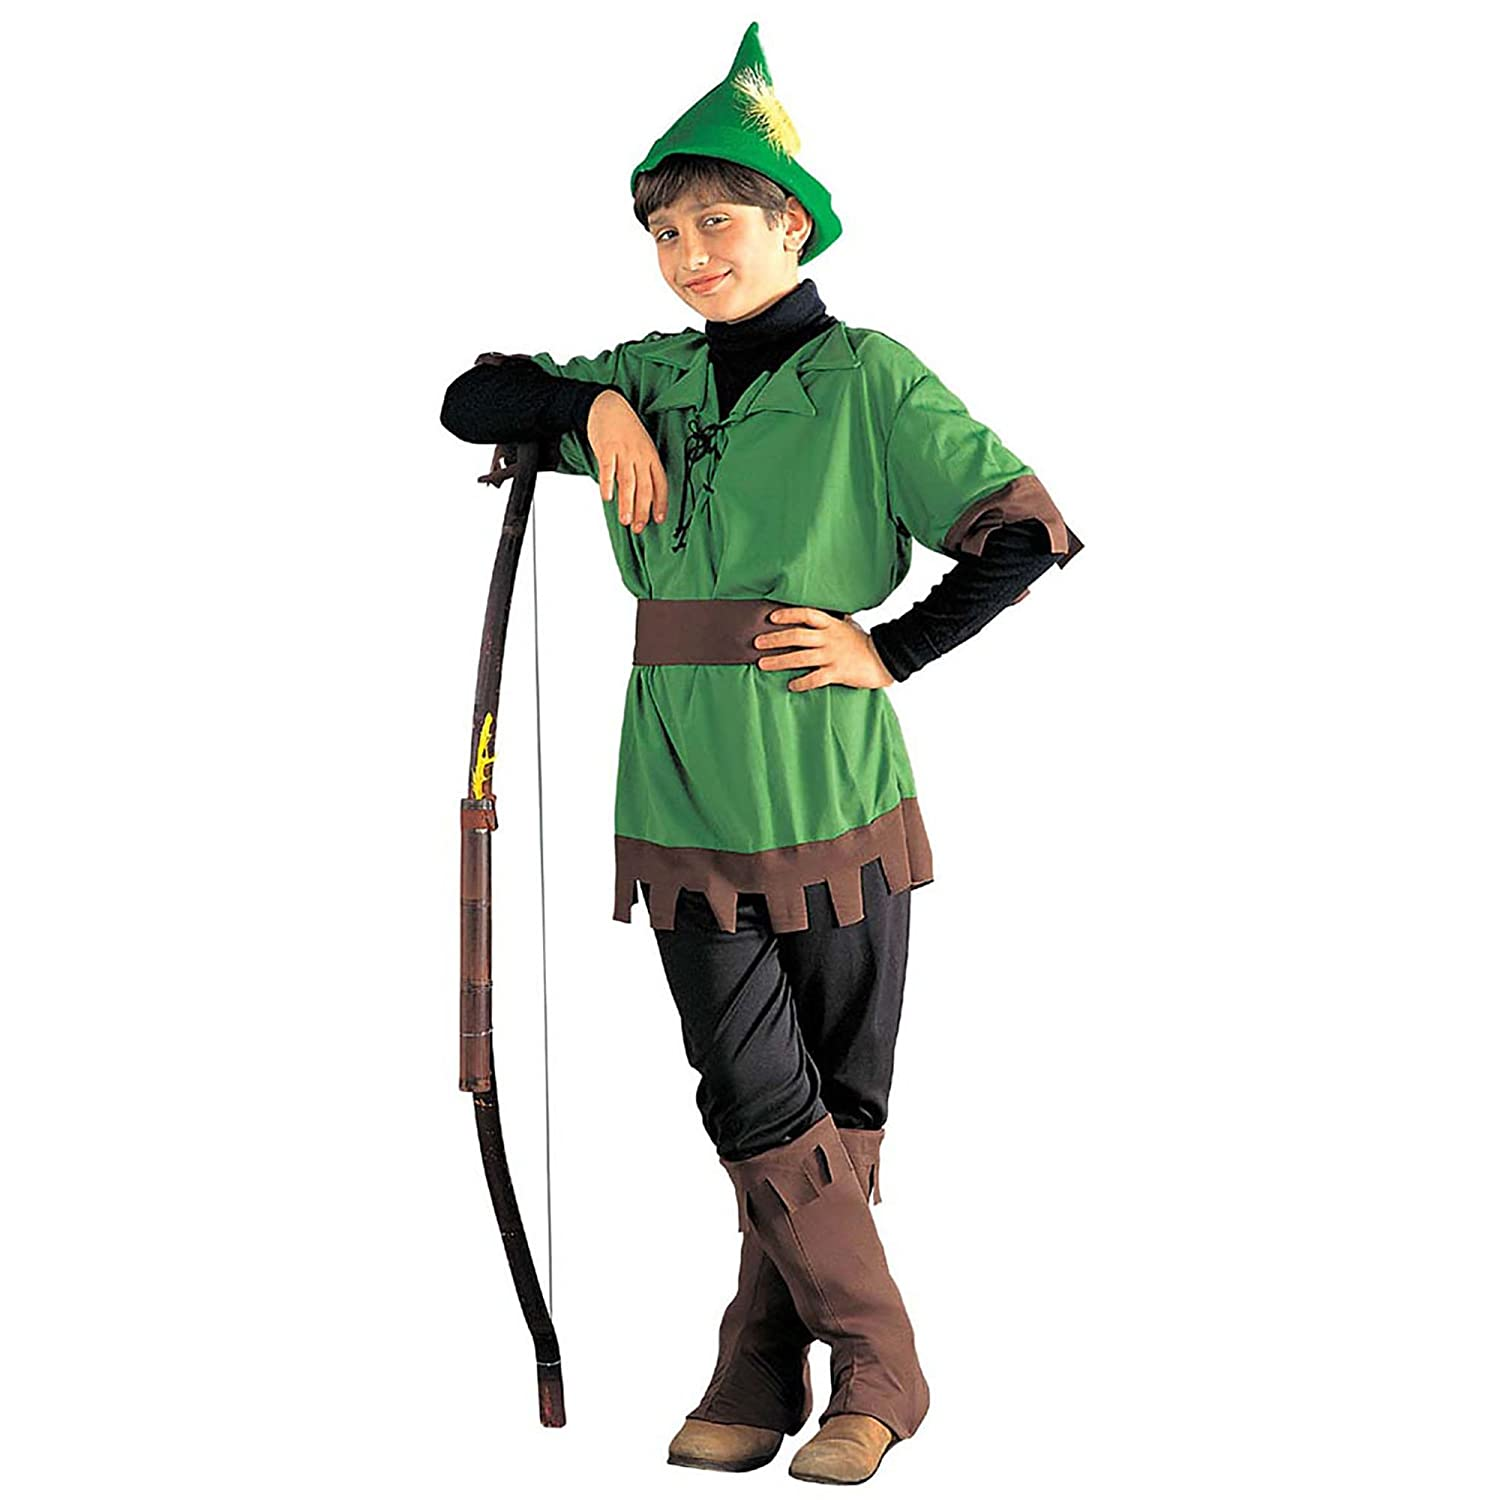 Children s Robin Hood 128cm Costume Small 5-7 yrs (128cm) for Middle Ages  Fancy Dress  Amazon.co.uk  Toys   Games 10eaf53412d3